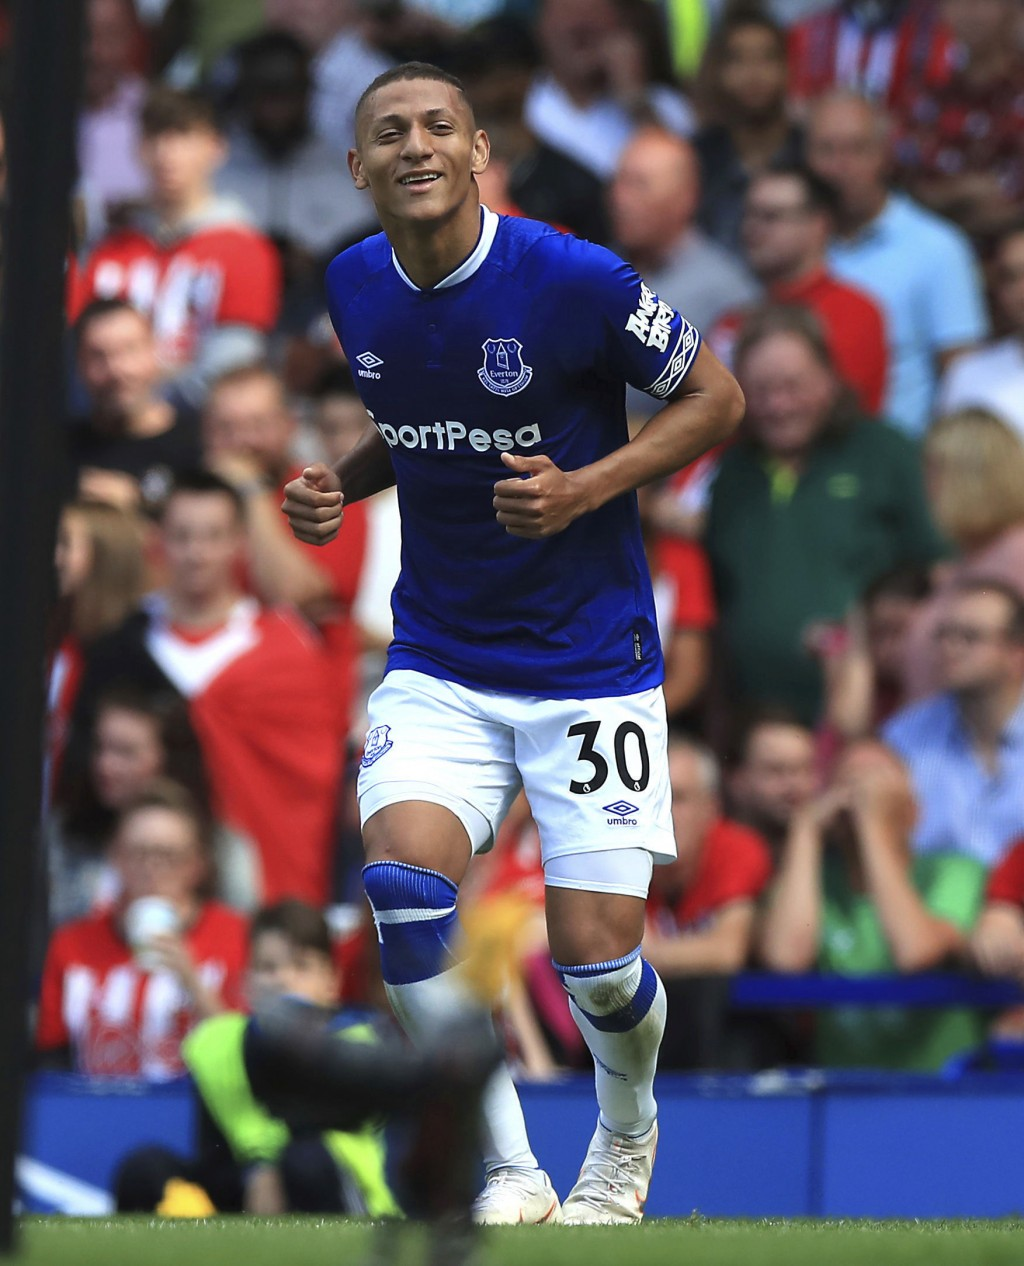 Everton's Richarlison celebrates scoring his side's second goal of the game against Southampton during their English Premier League soccer match at Go...